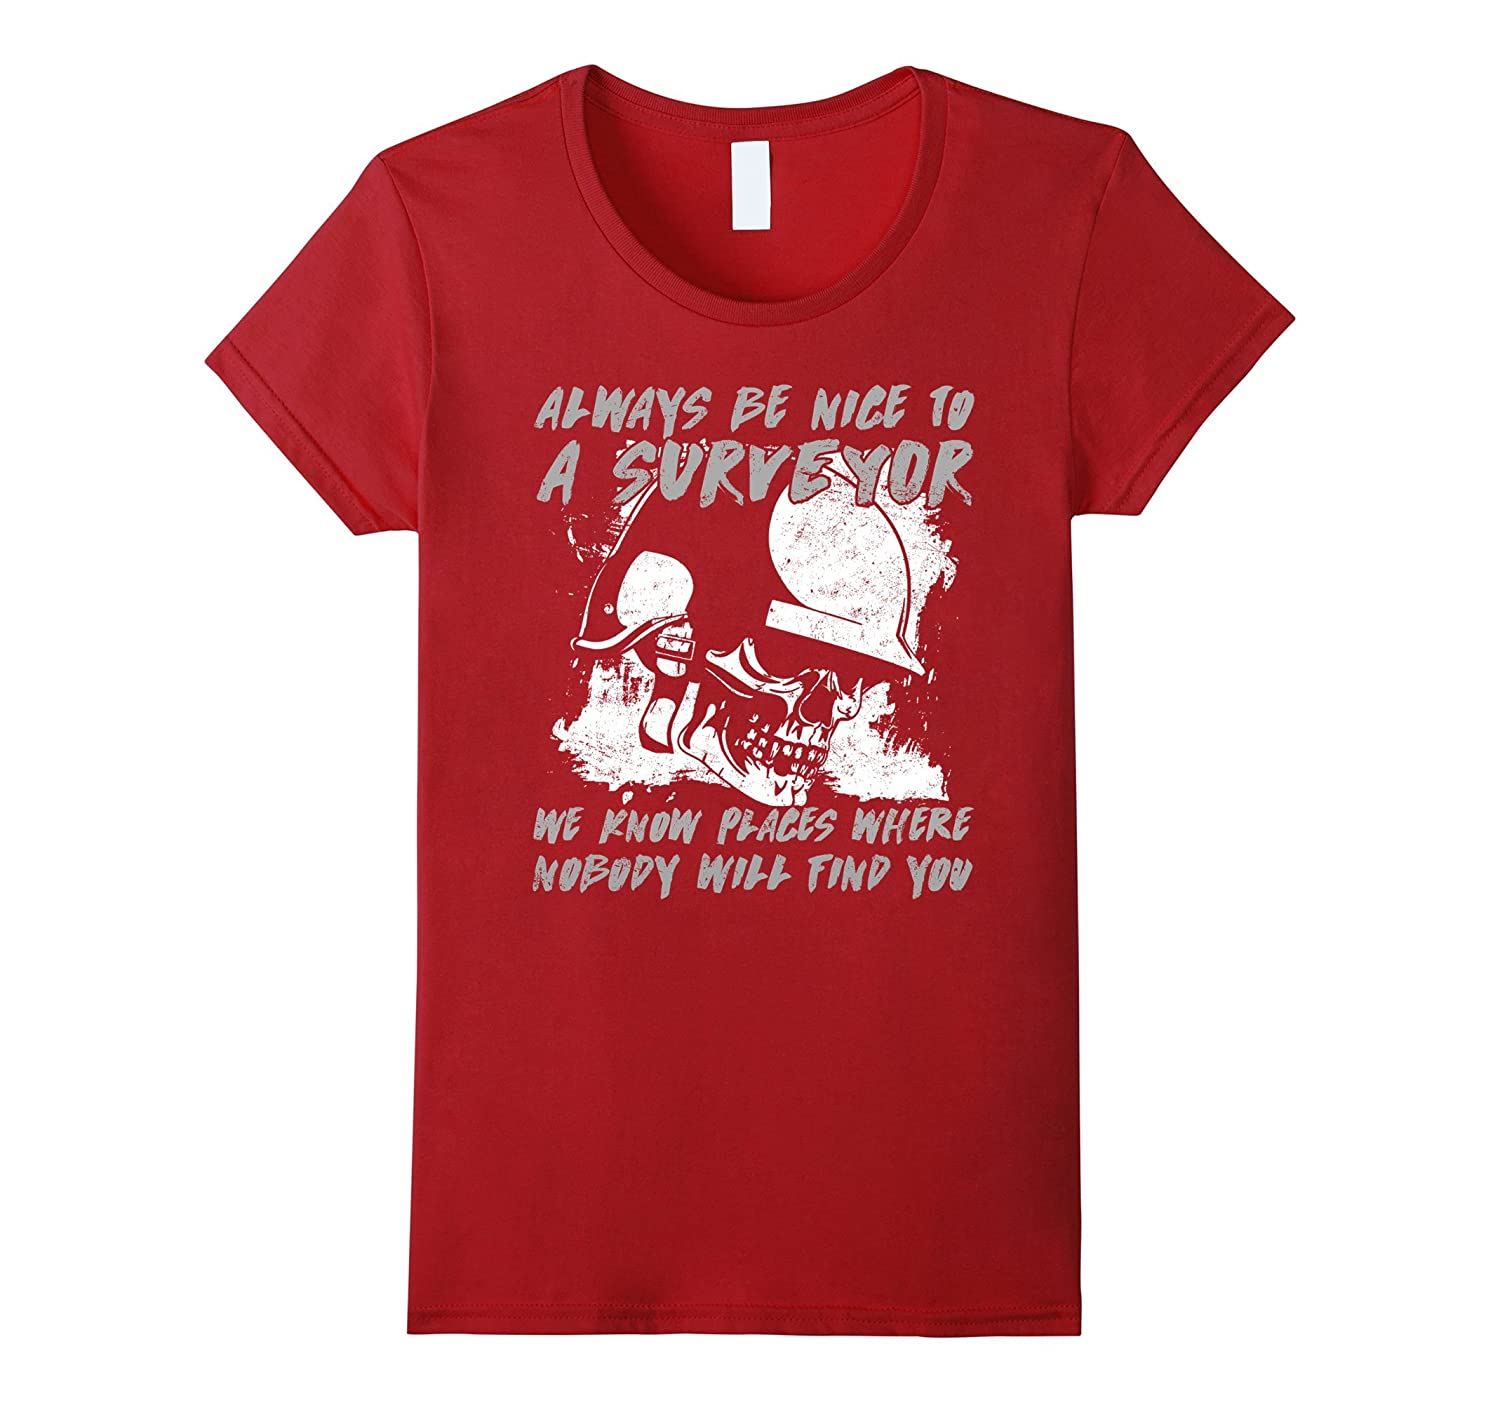 A Surveyor Knows Places Where Nobody Will Find You T-shirt